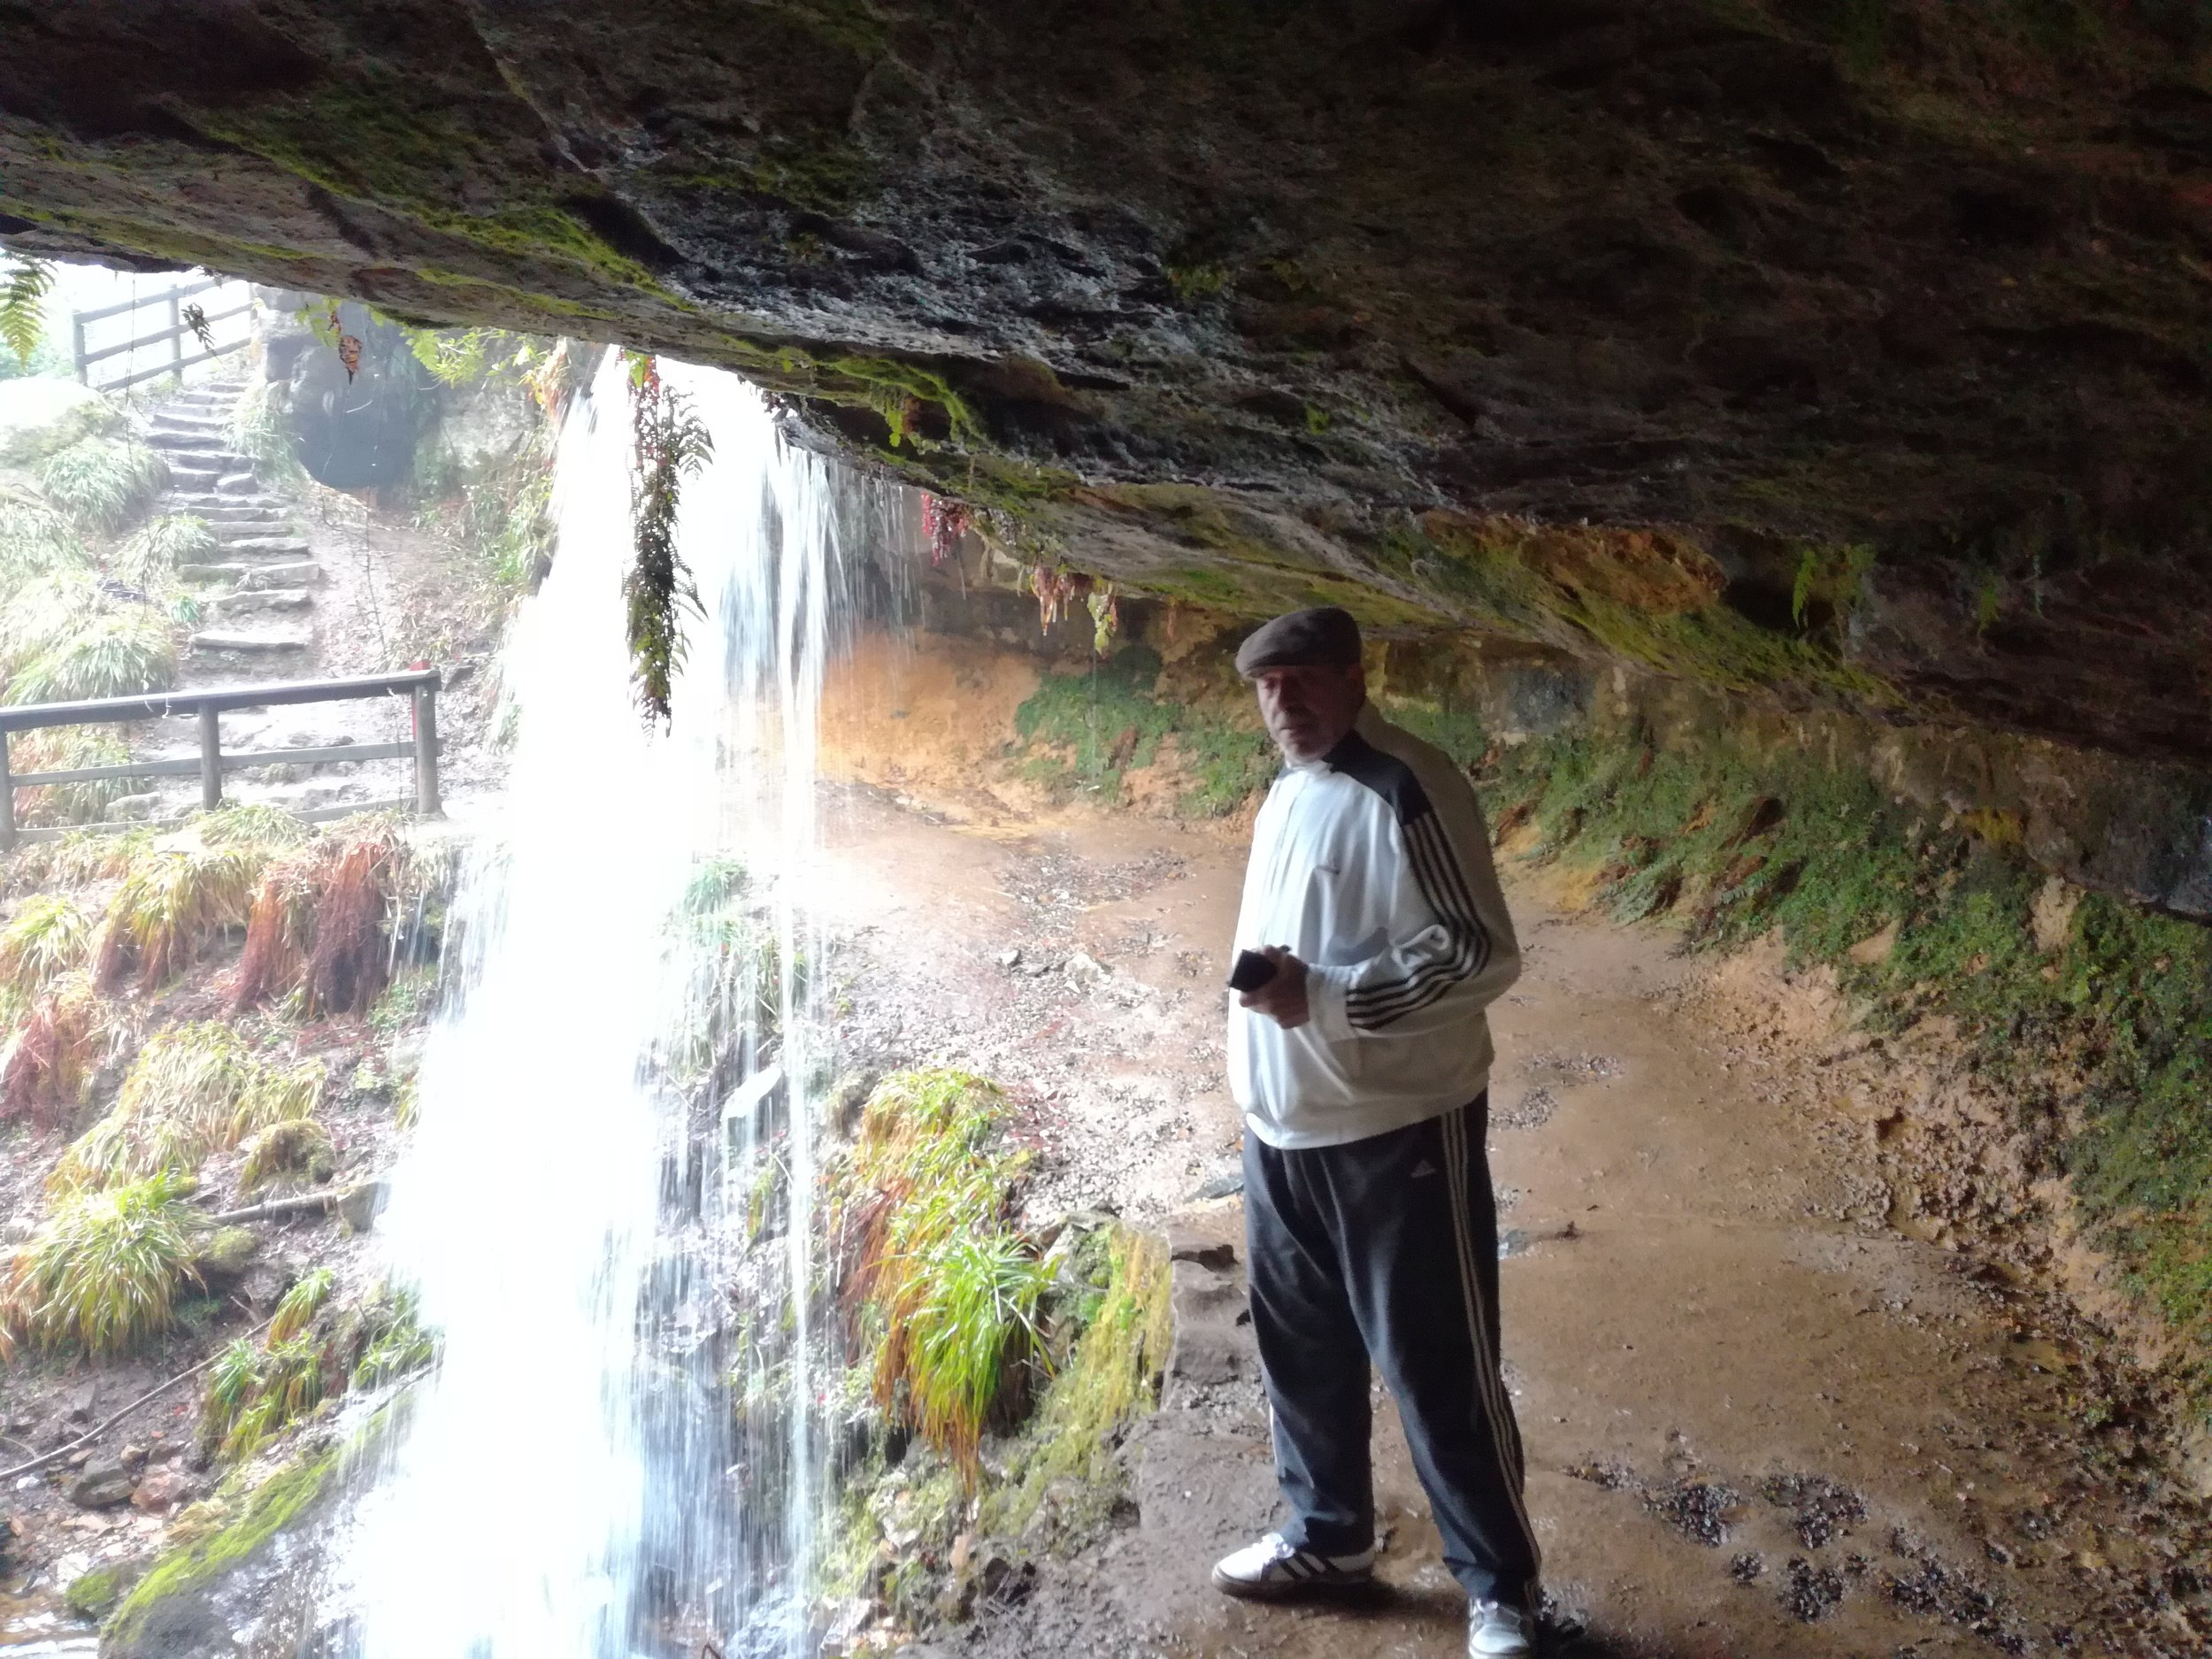 Walk behind a waterfall, Tour & Walk Scotland in small group adventures - Roaming Scotland.jpg